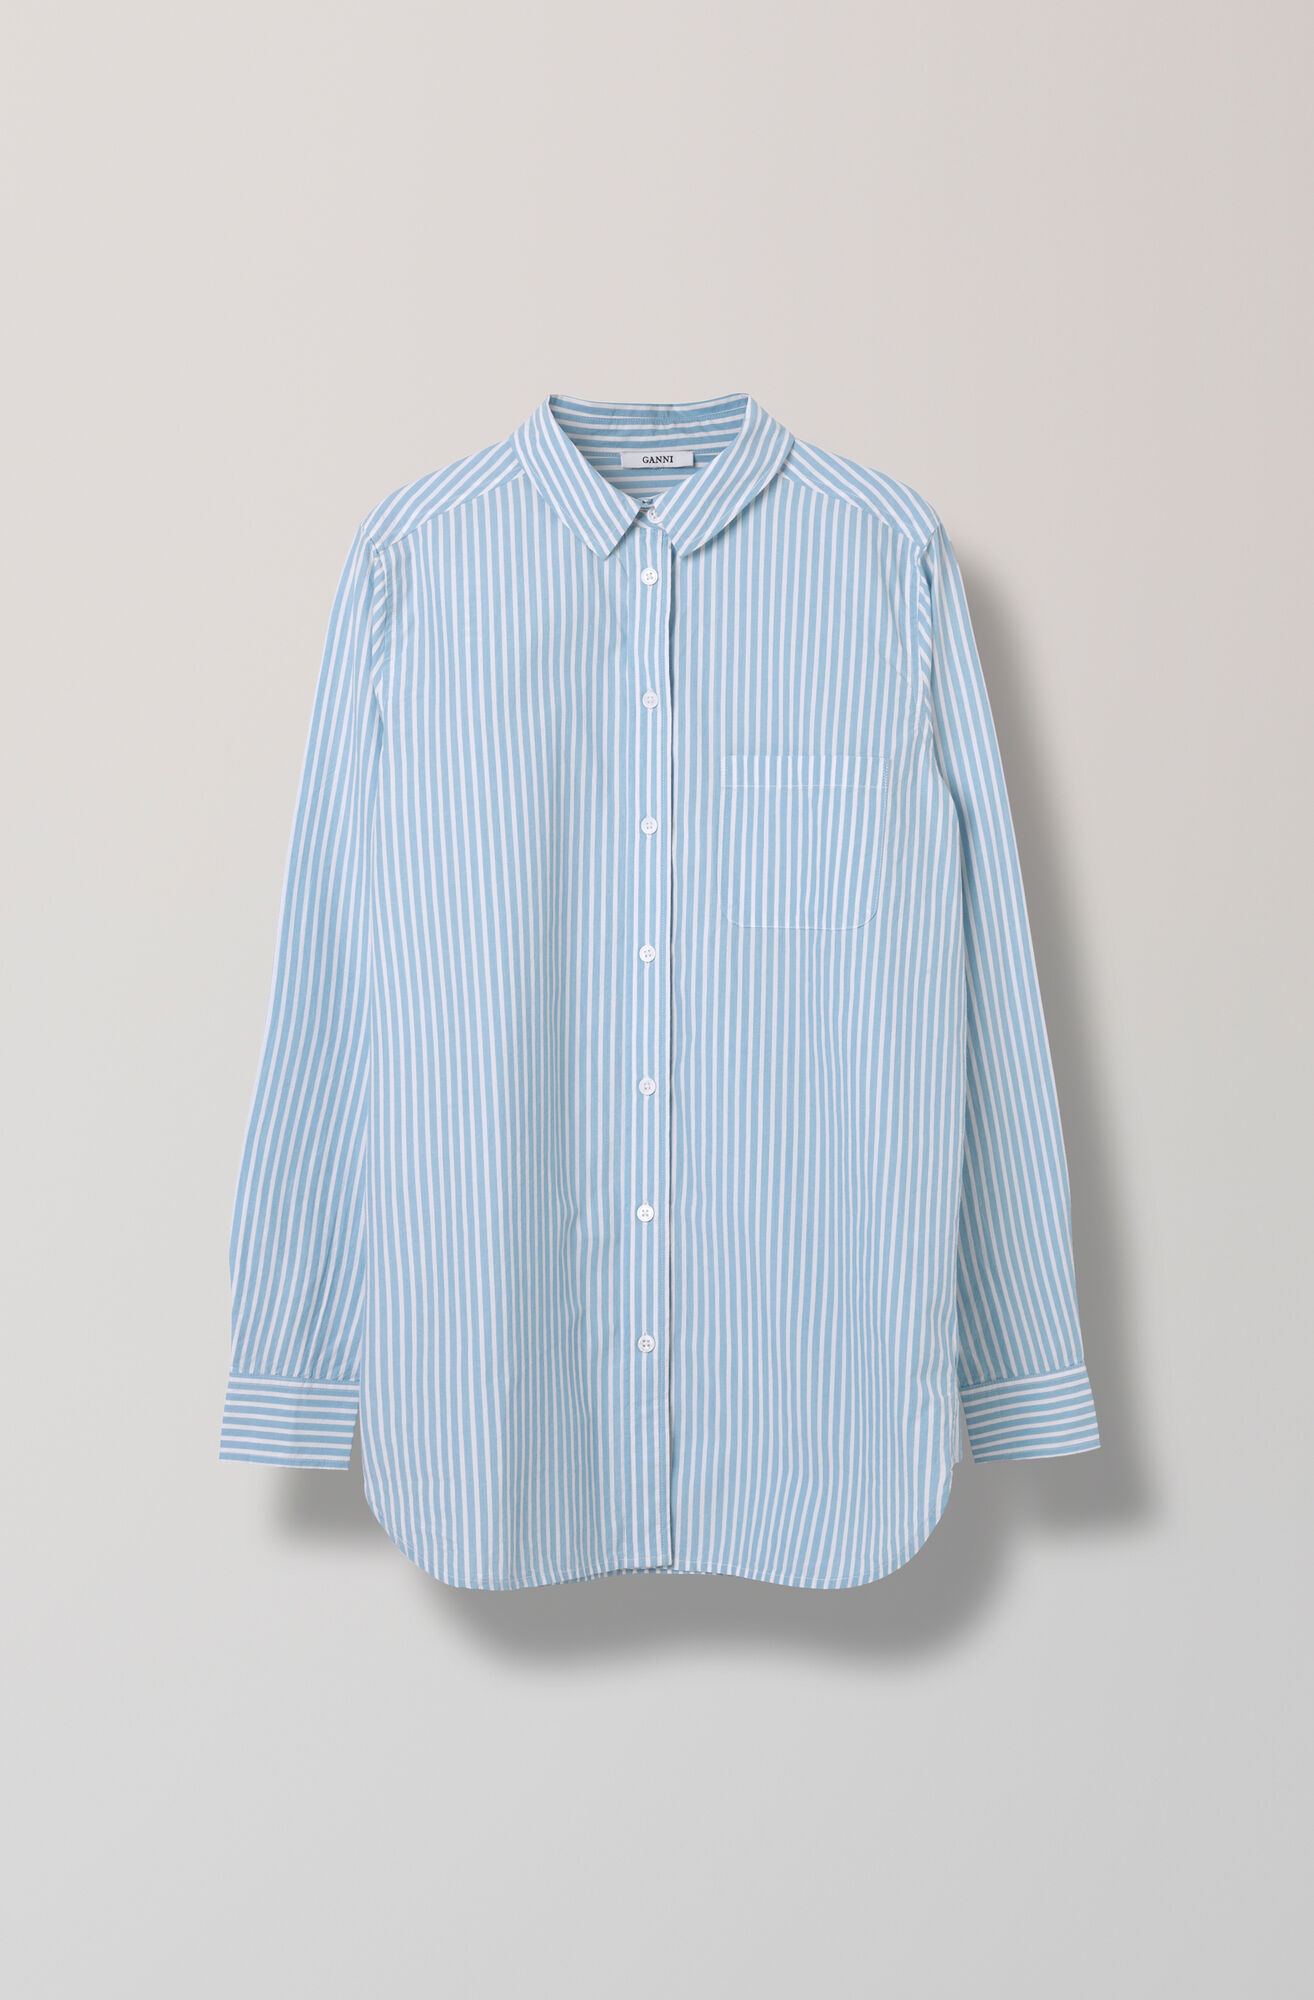 Favourite Shirt Cotton Shirt Striped, Pearl Blue, hi-res